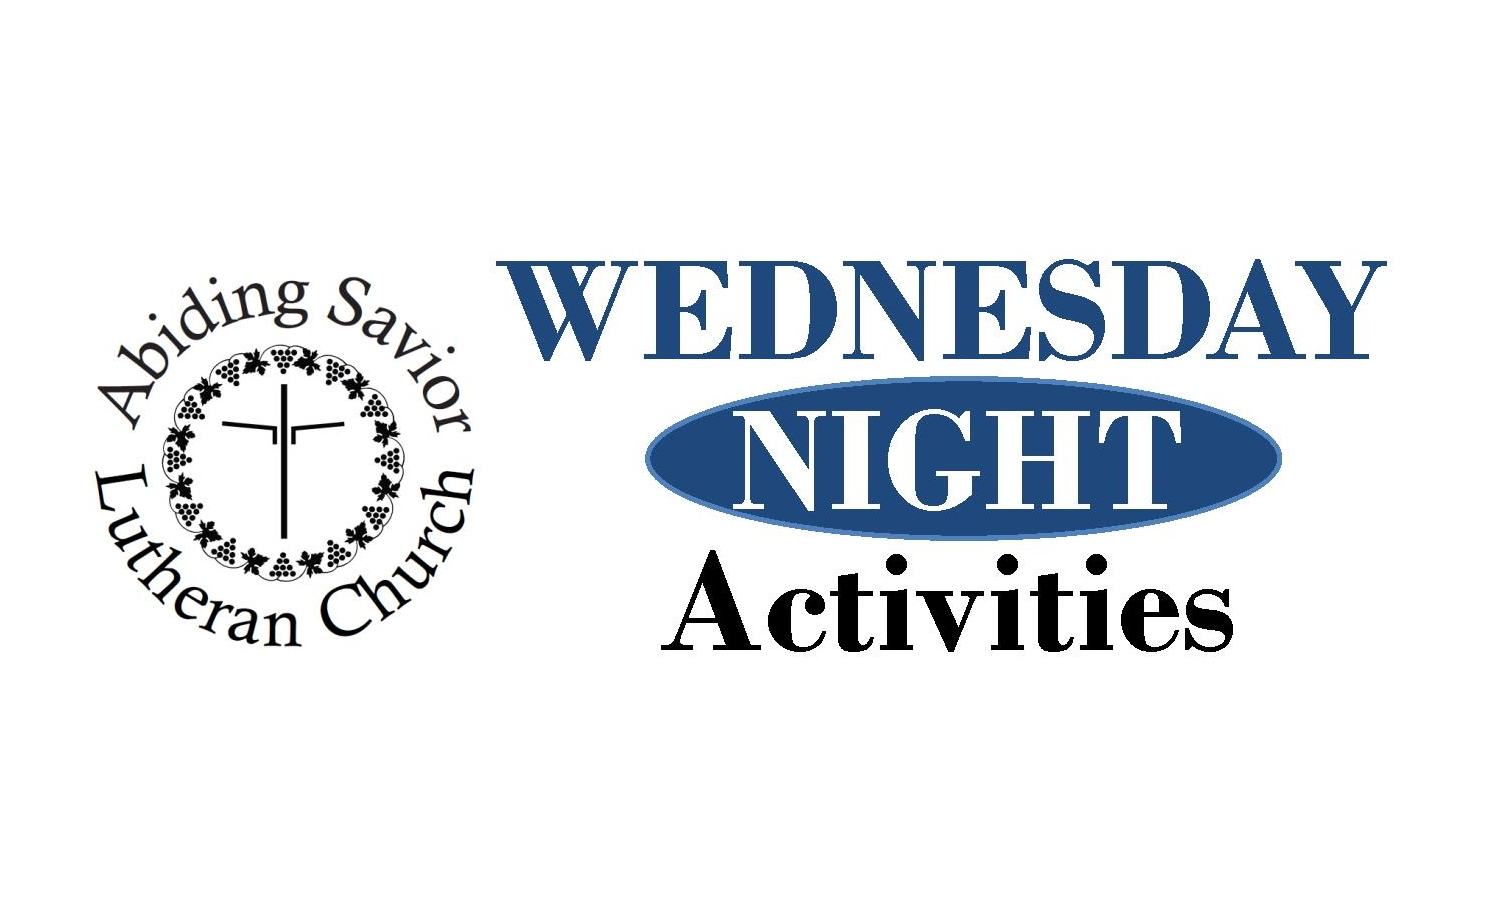 Join us for Wednesday night activities!